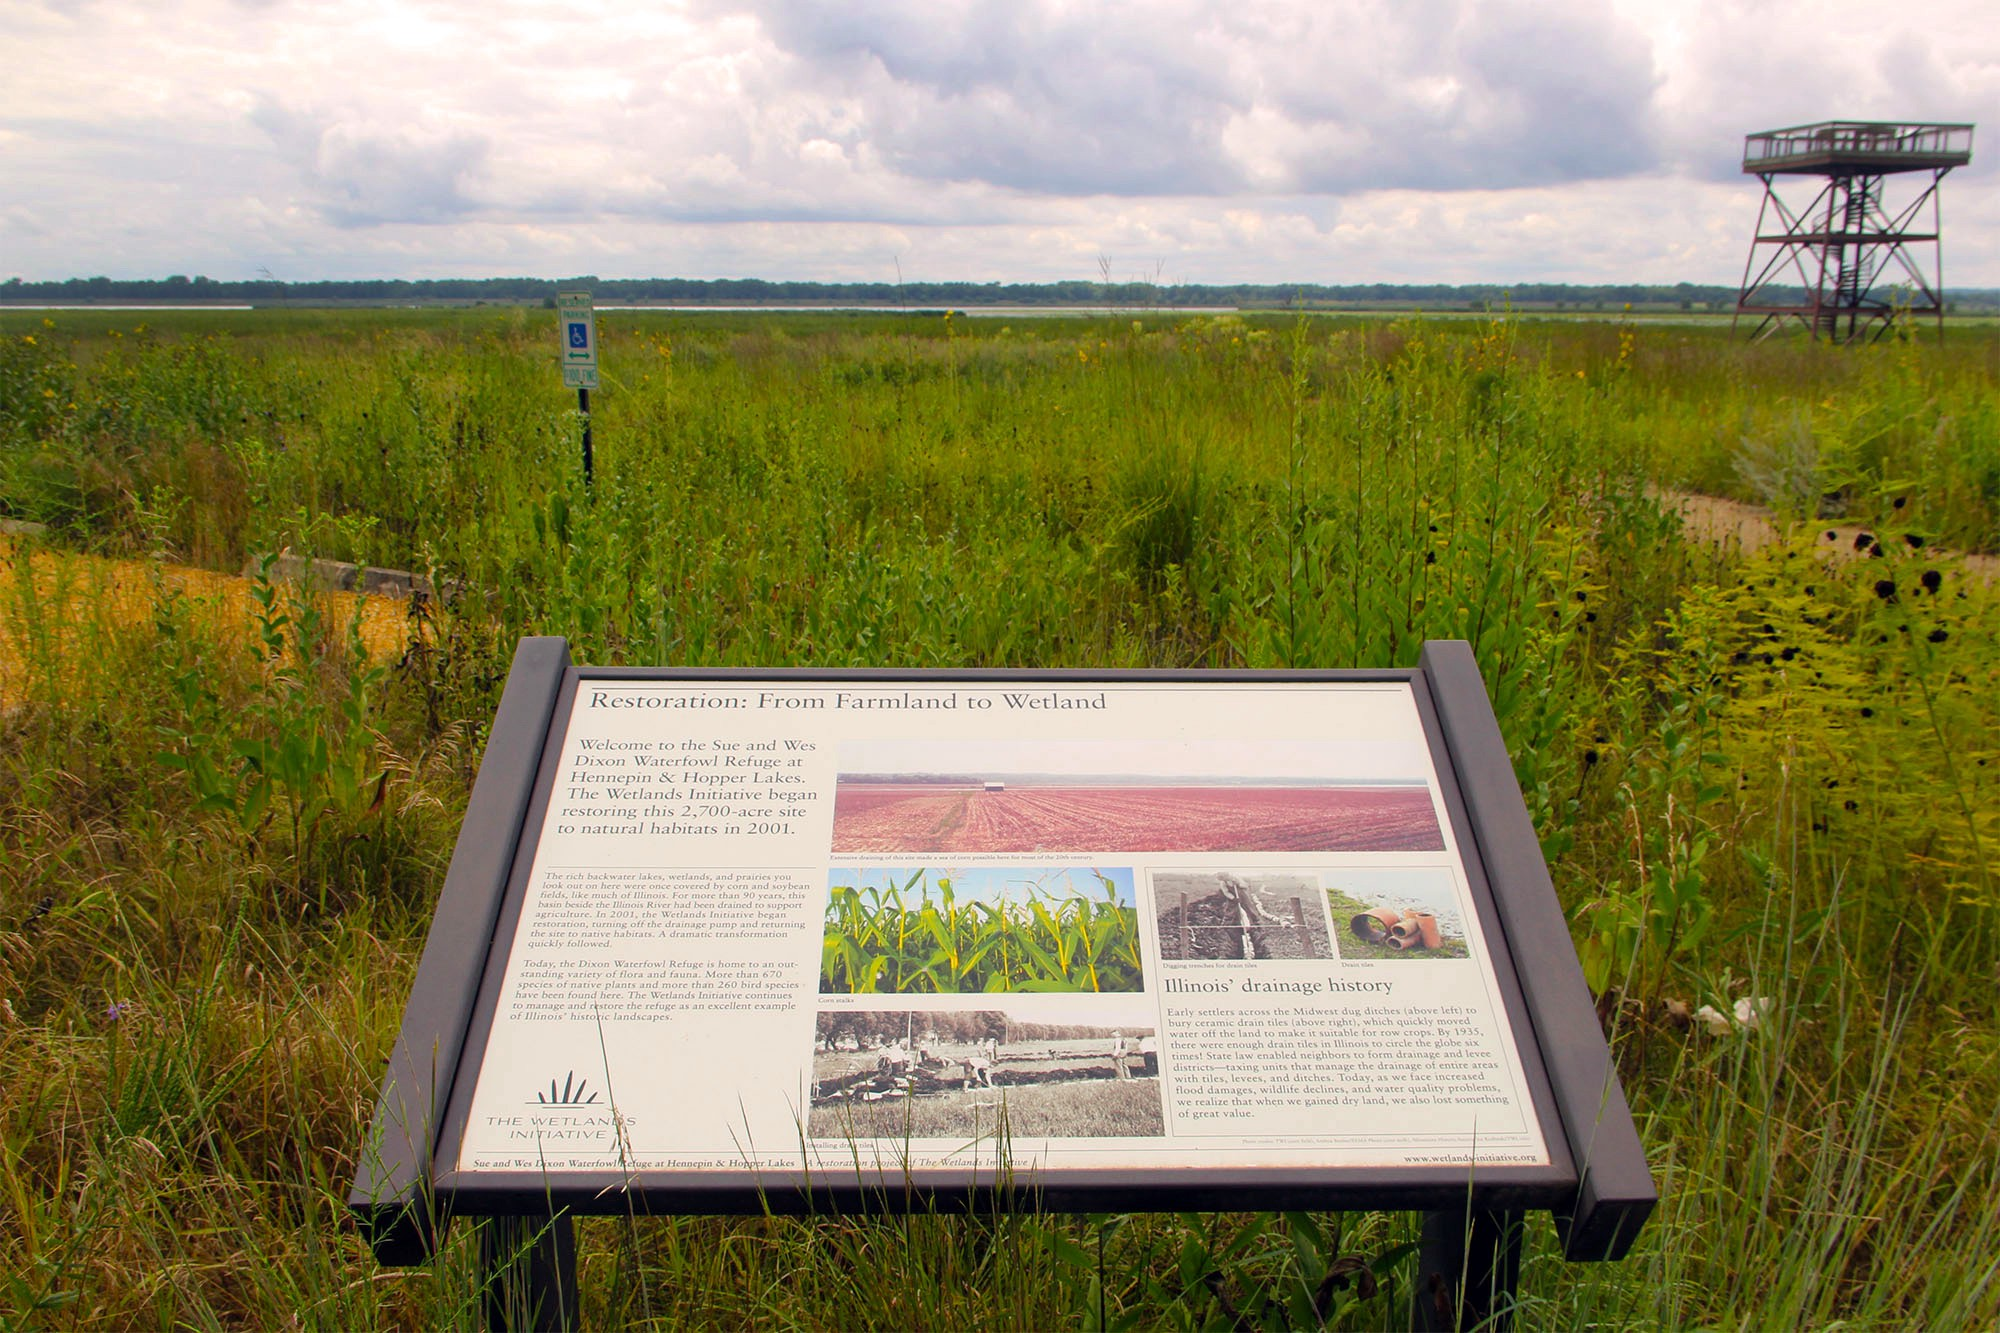 Interpretive sign in front of prairie landscape